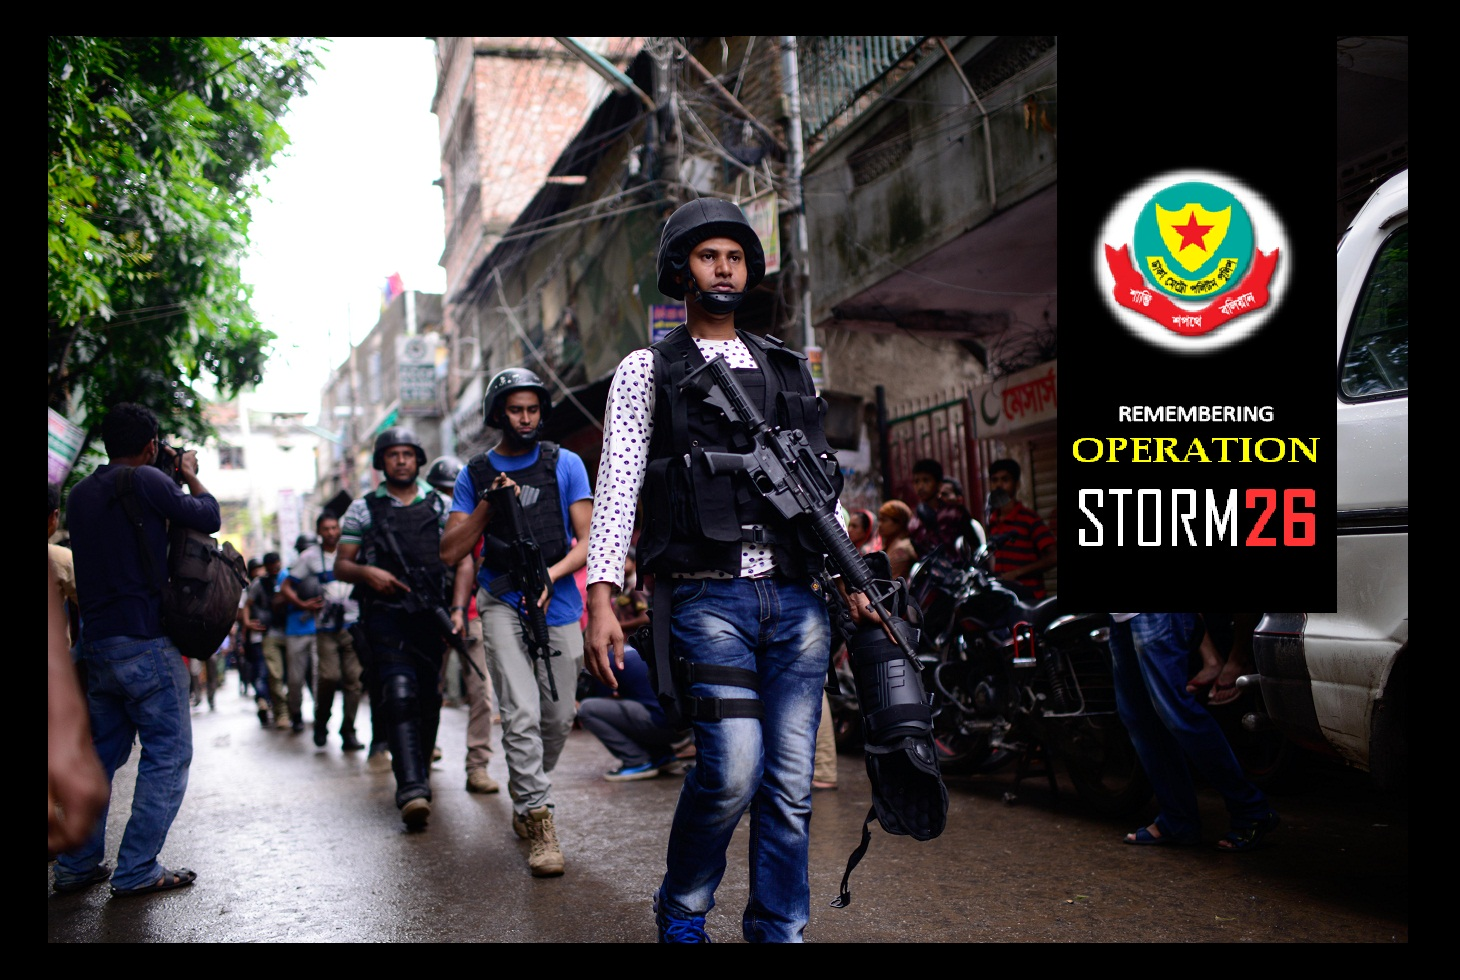 Remembering Operation Storm-26